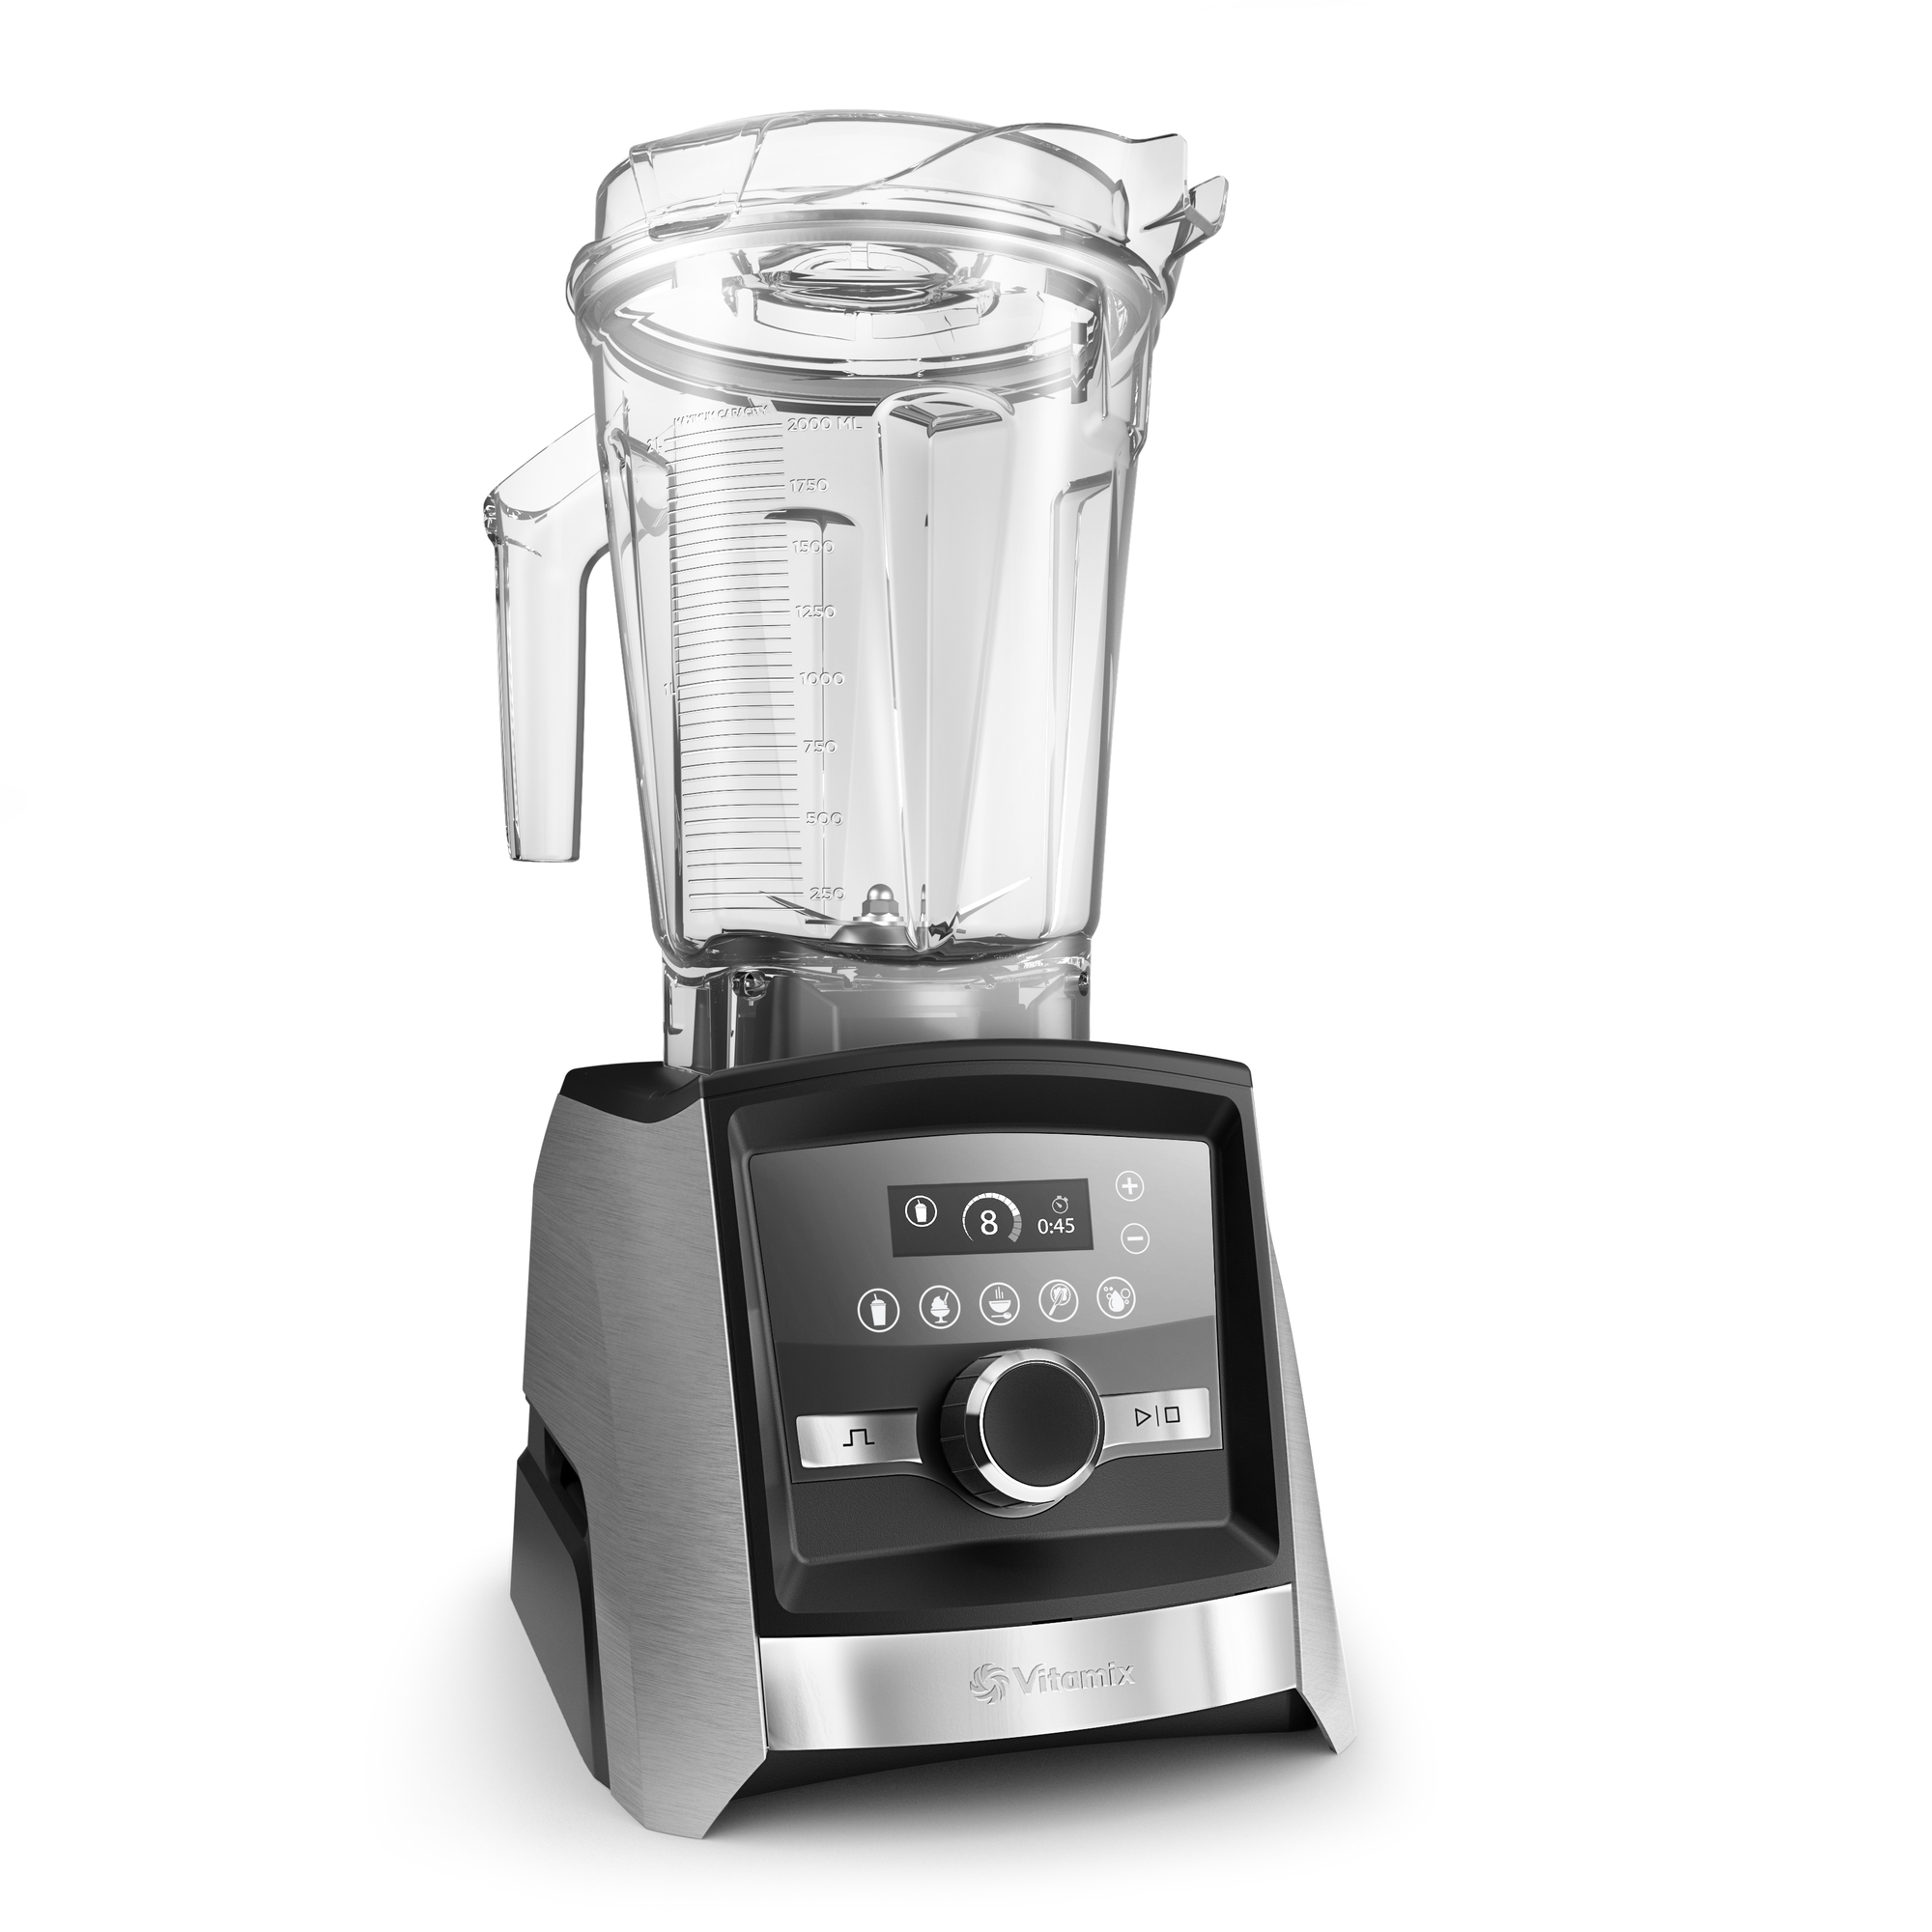 Vitamix s Ascent Series Is Focused on Using IoT to Create